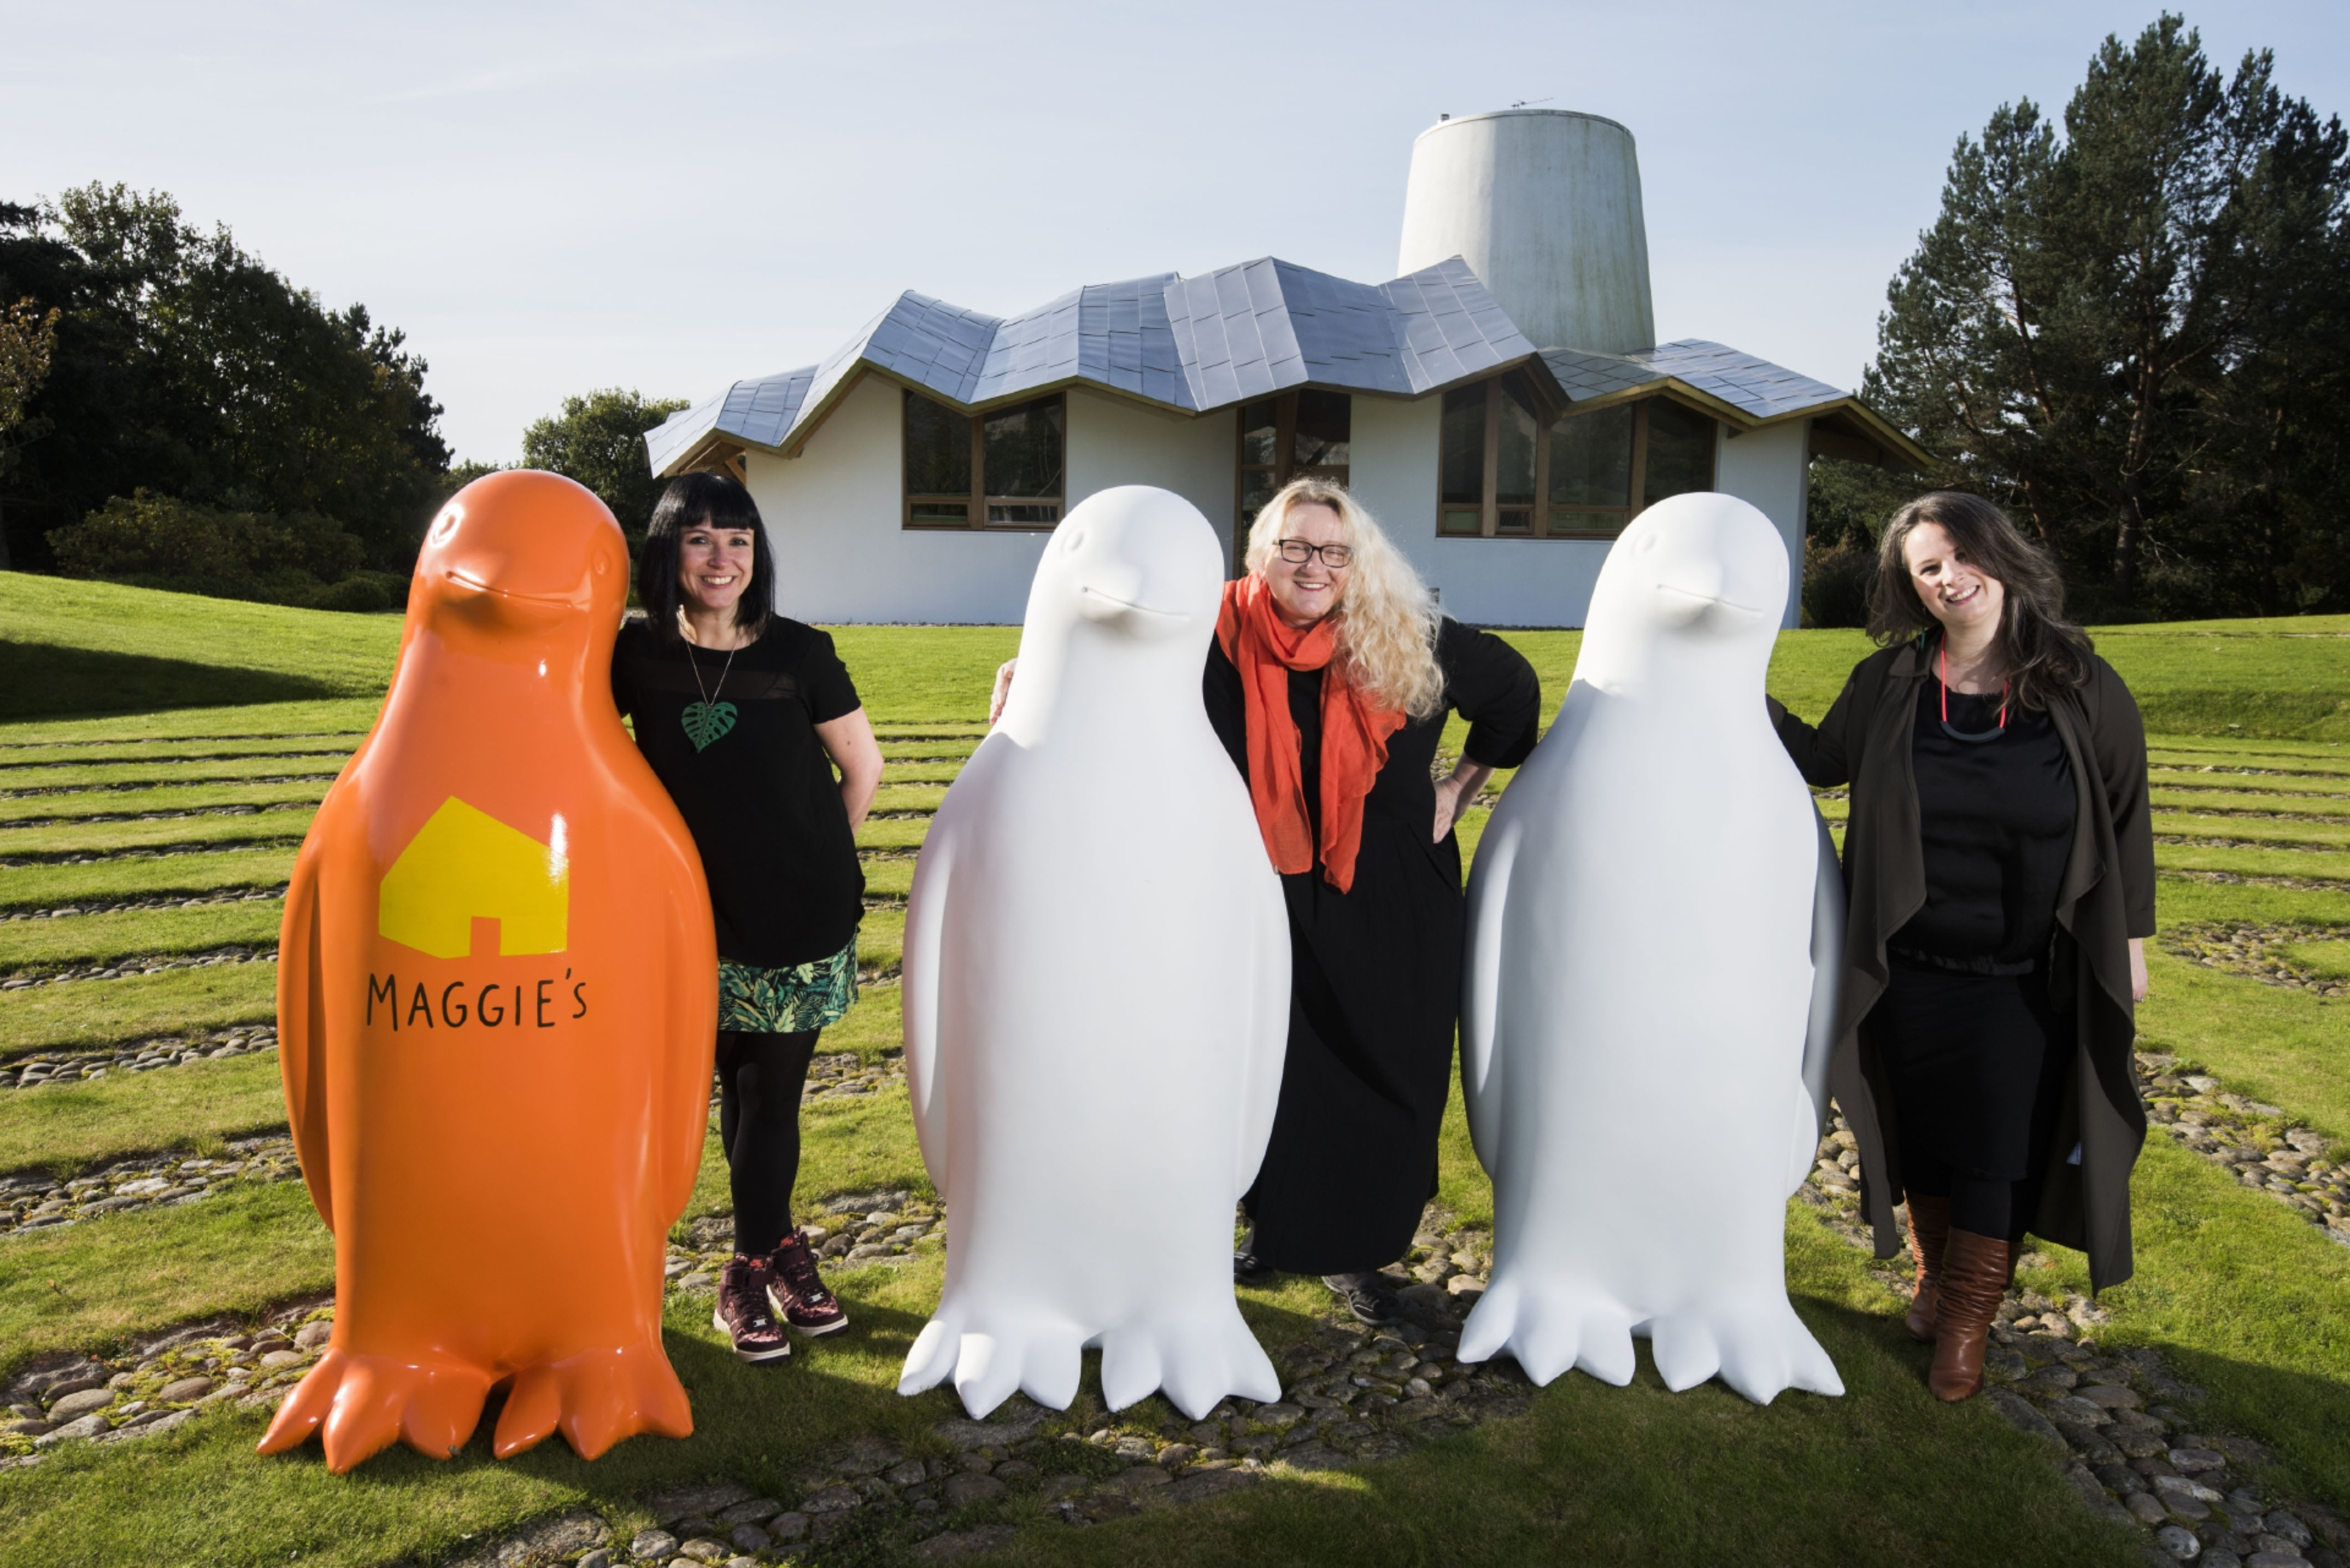 Artist coordinators Suzanne Scott and Joanne MacFadyen and penguin sculpture designer Janice Aitken.